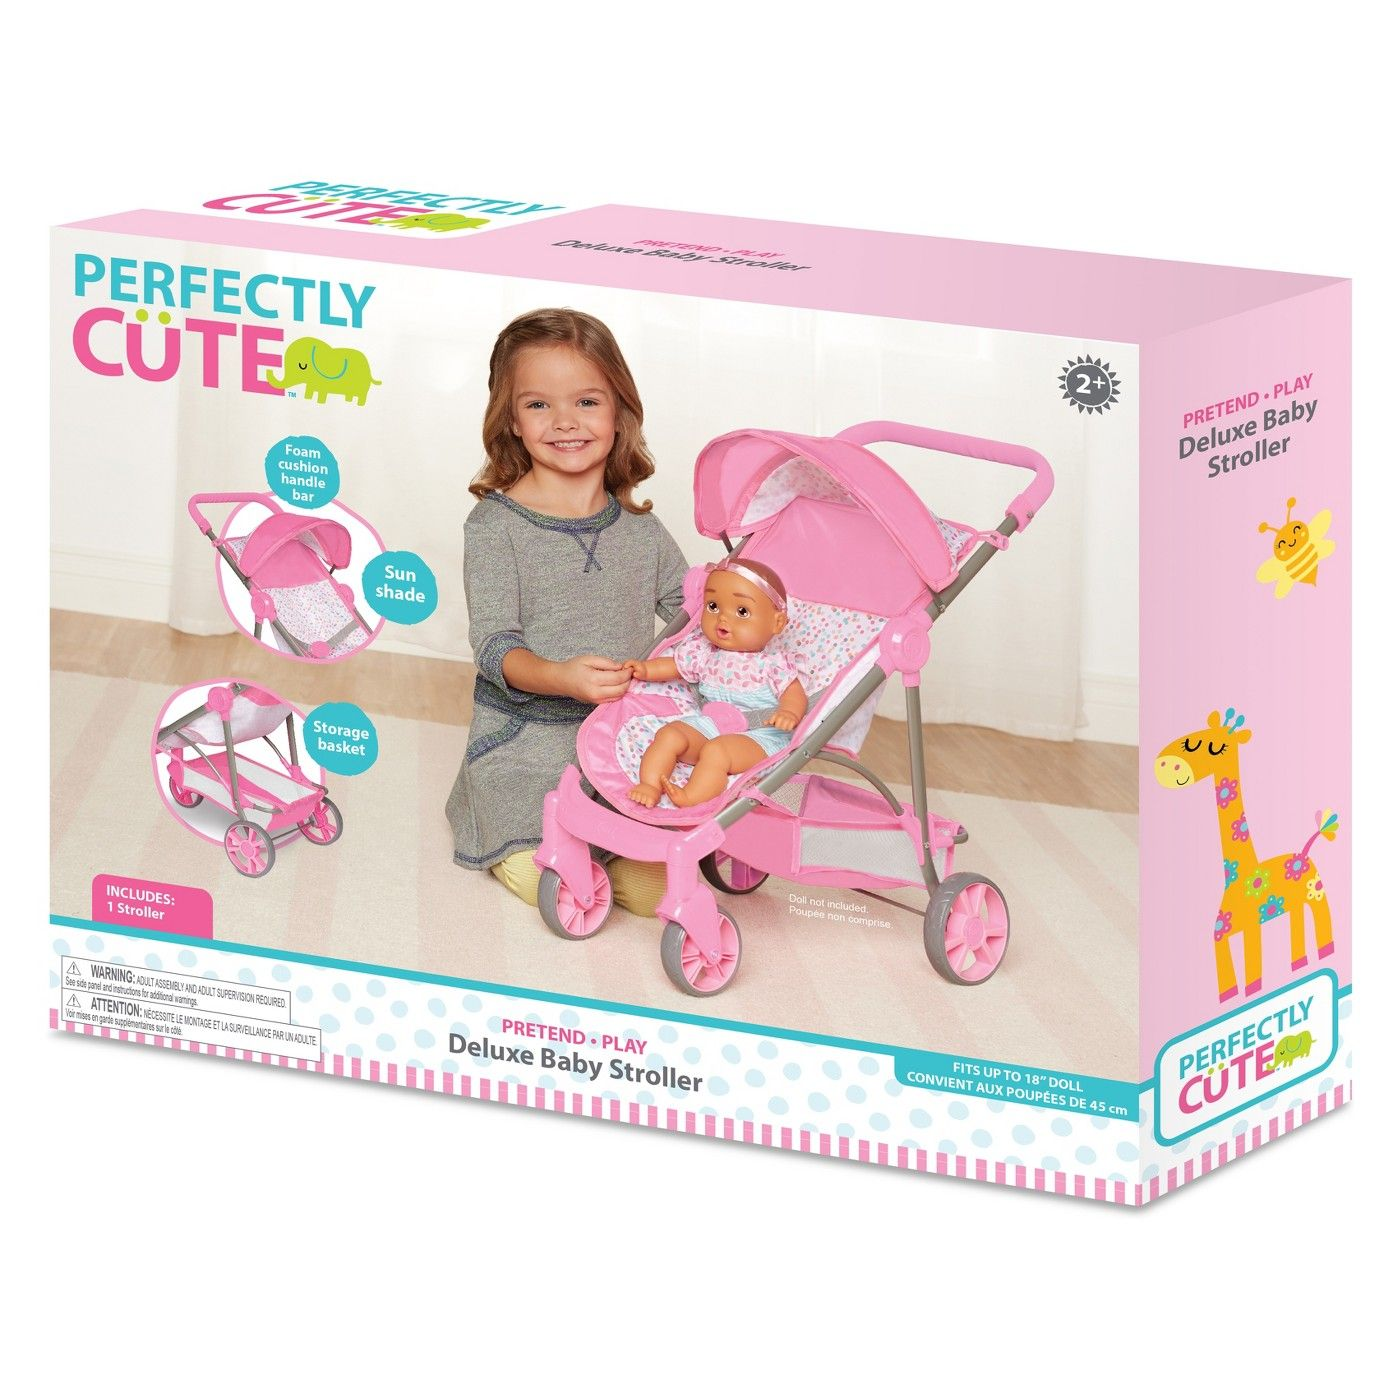 Perfectly Cute Baby Doll Deluxe Stroller Cute baby dolls